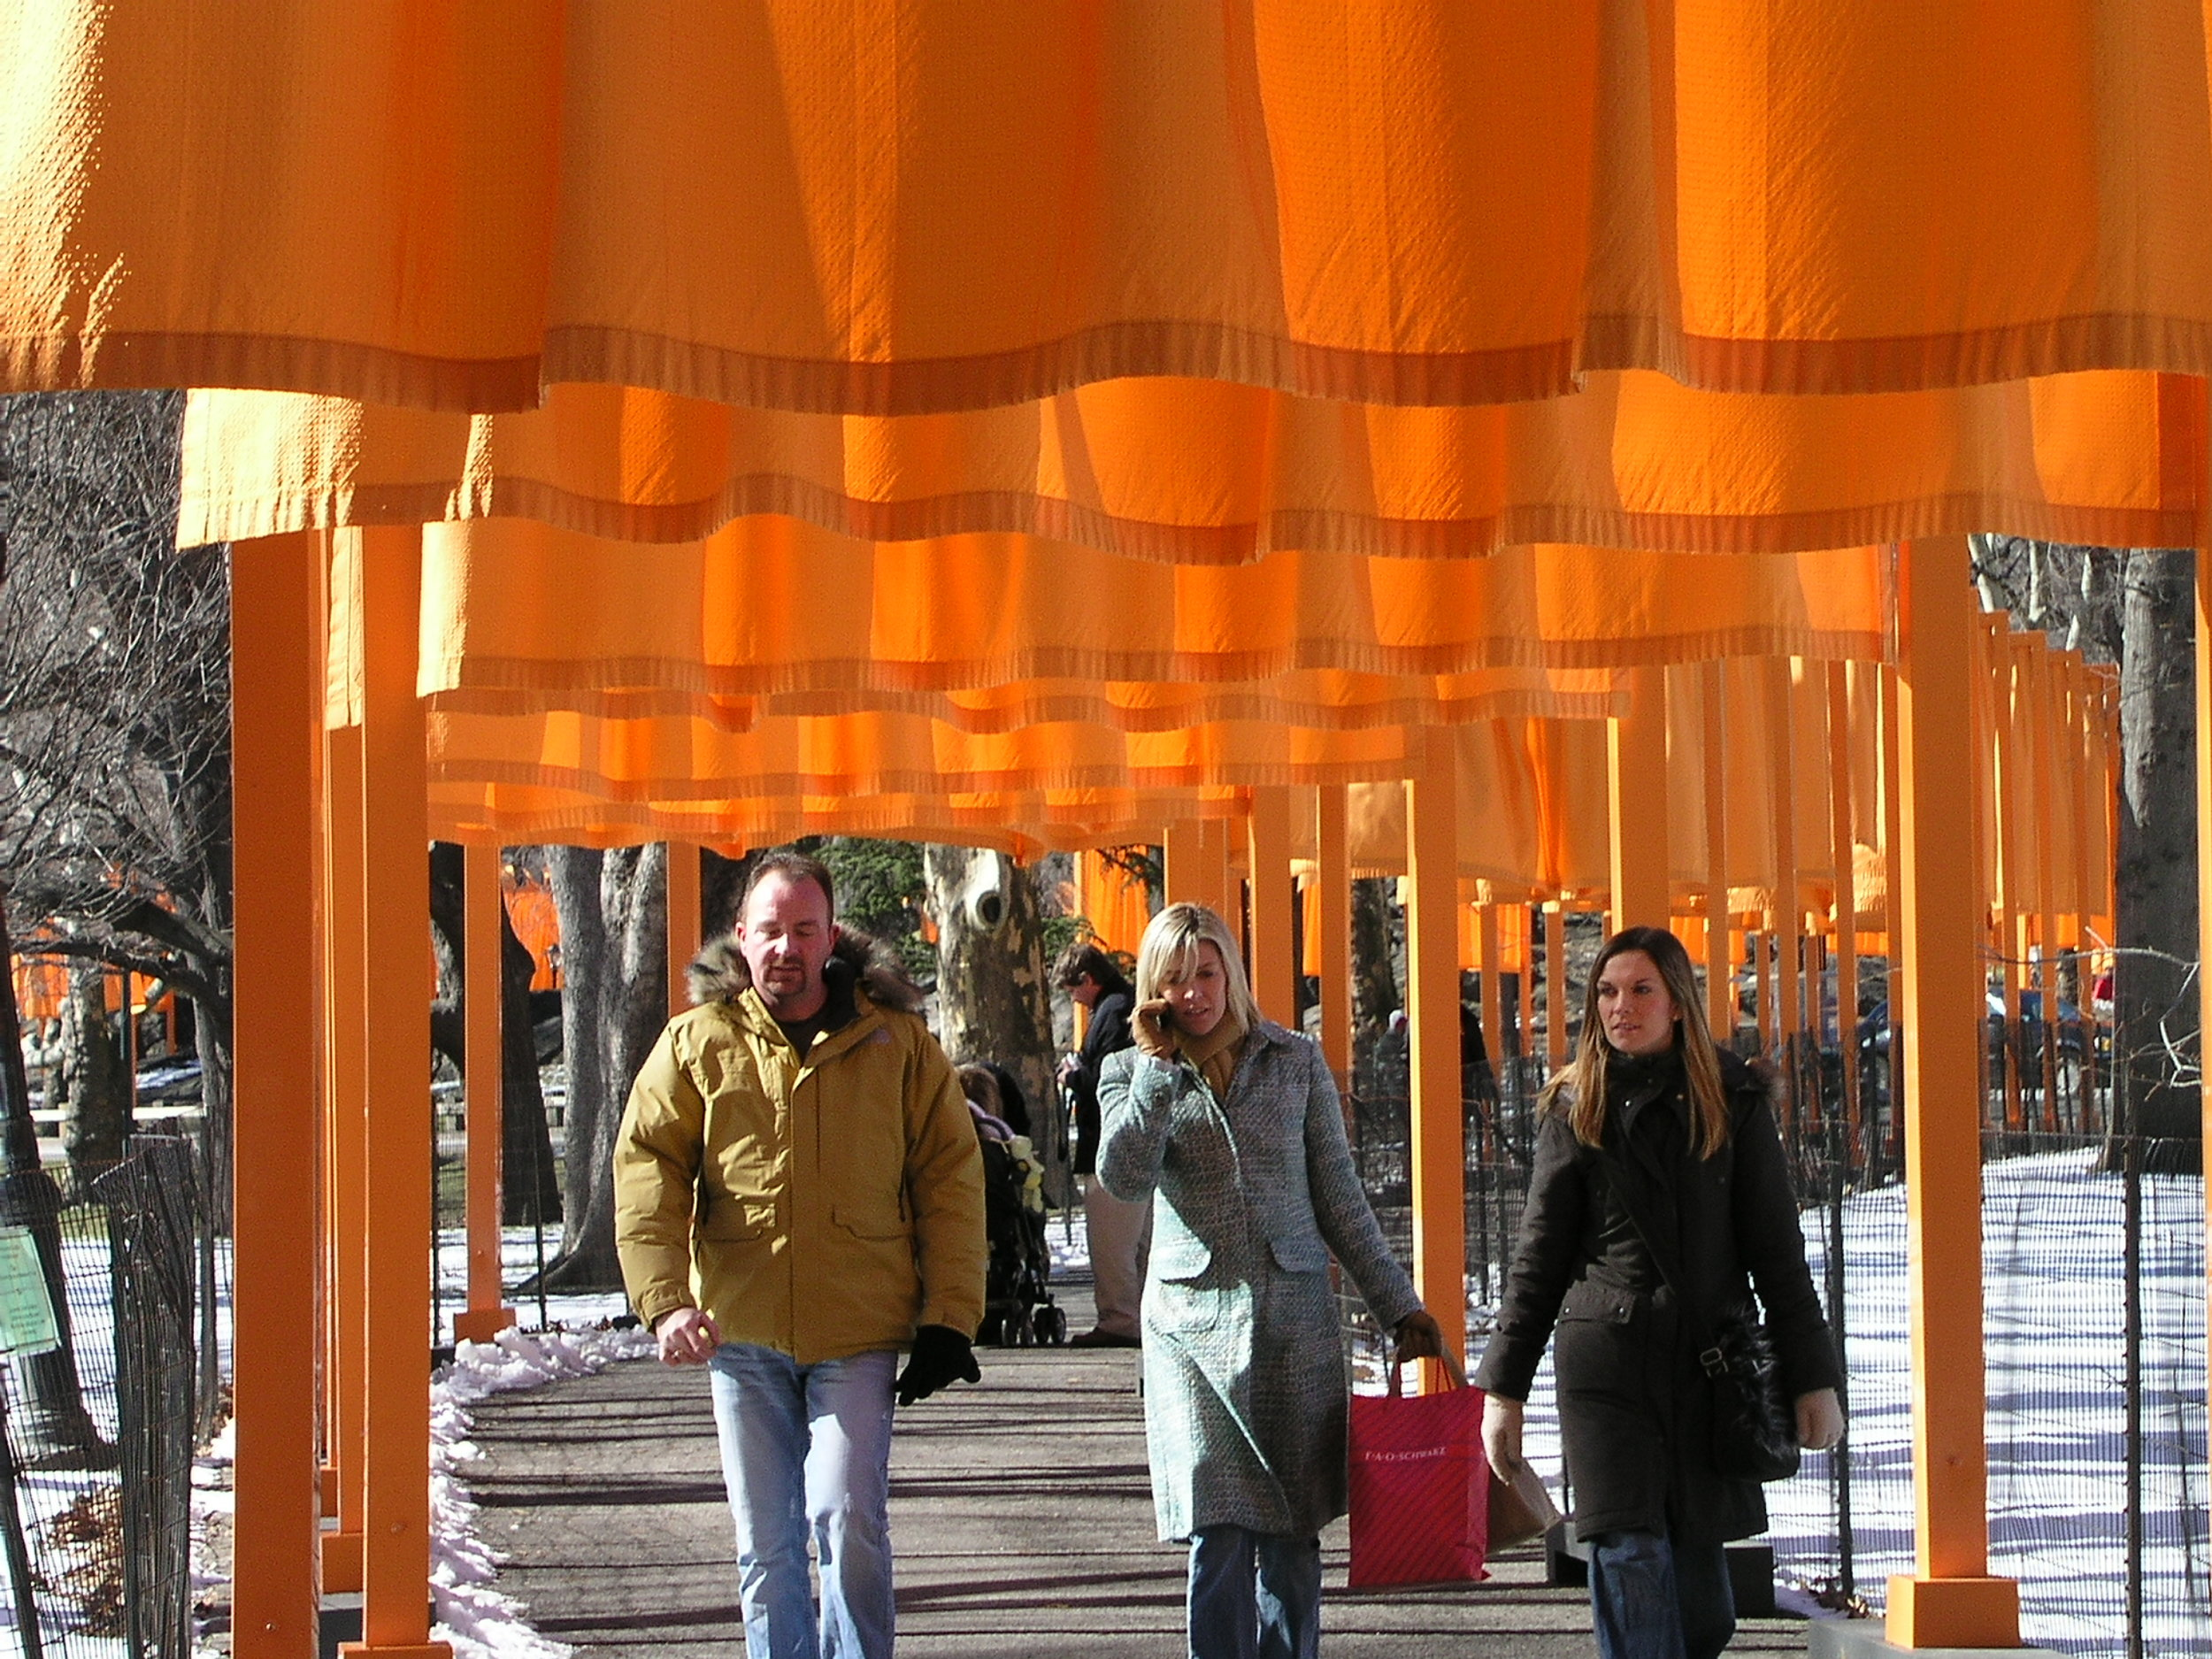 The Christo Gates 2005 in Central Park.6.JPG